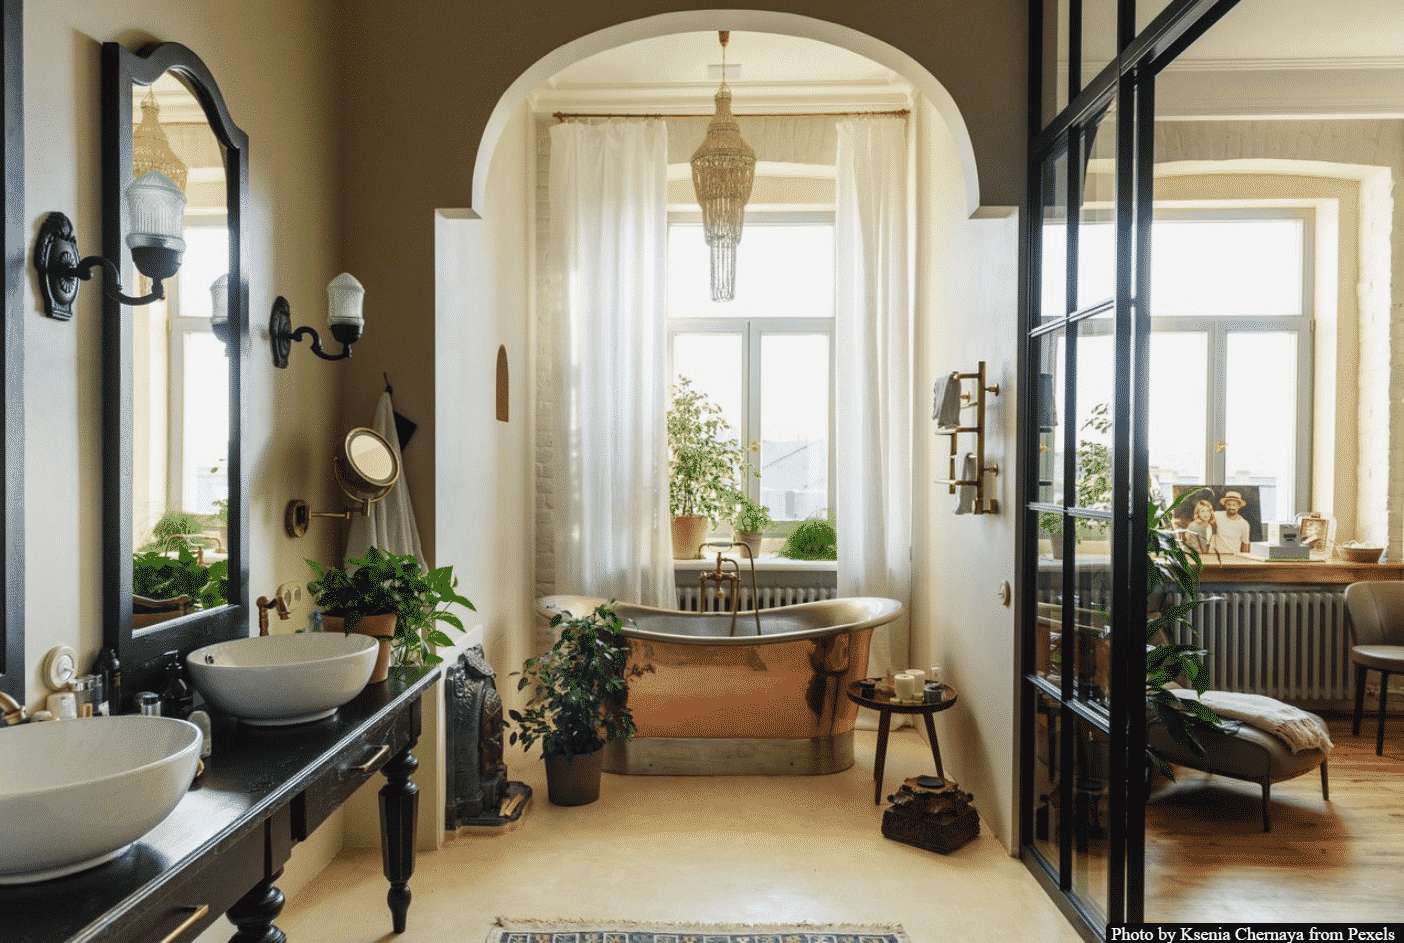 What Are The Most Expensive Aspects Of A Bathroom Remodel